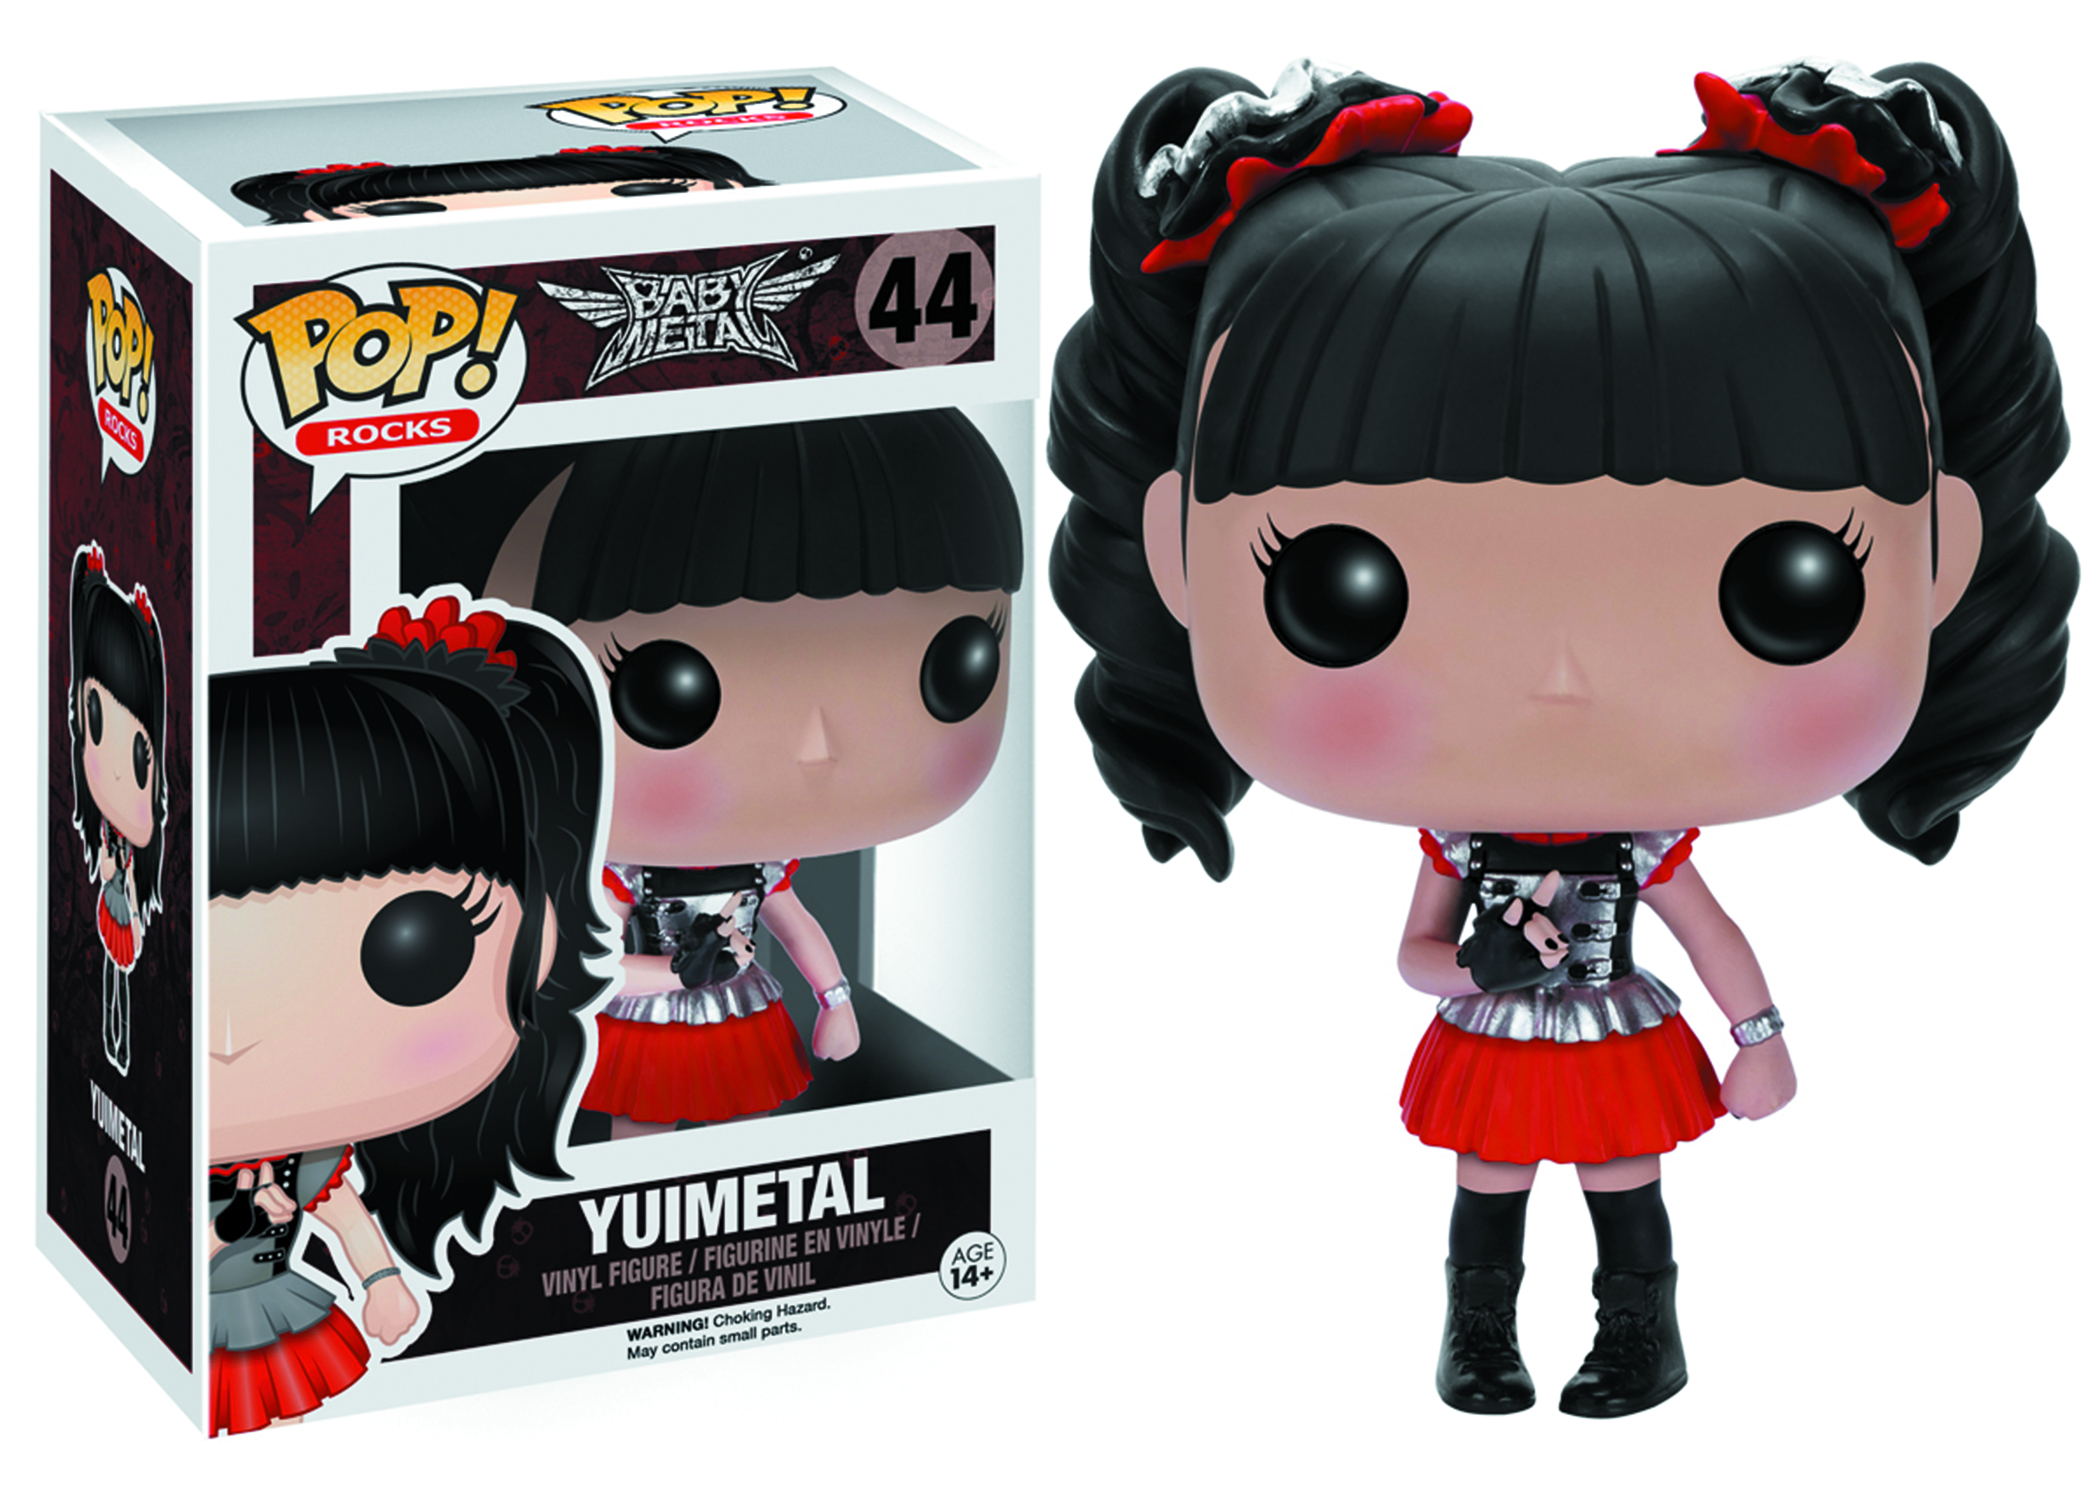 POP BABYMETAL YUIMETAL VINYL FIG